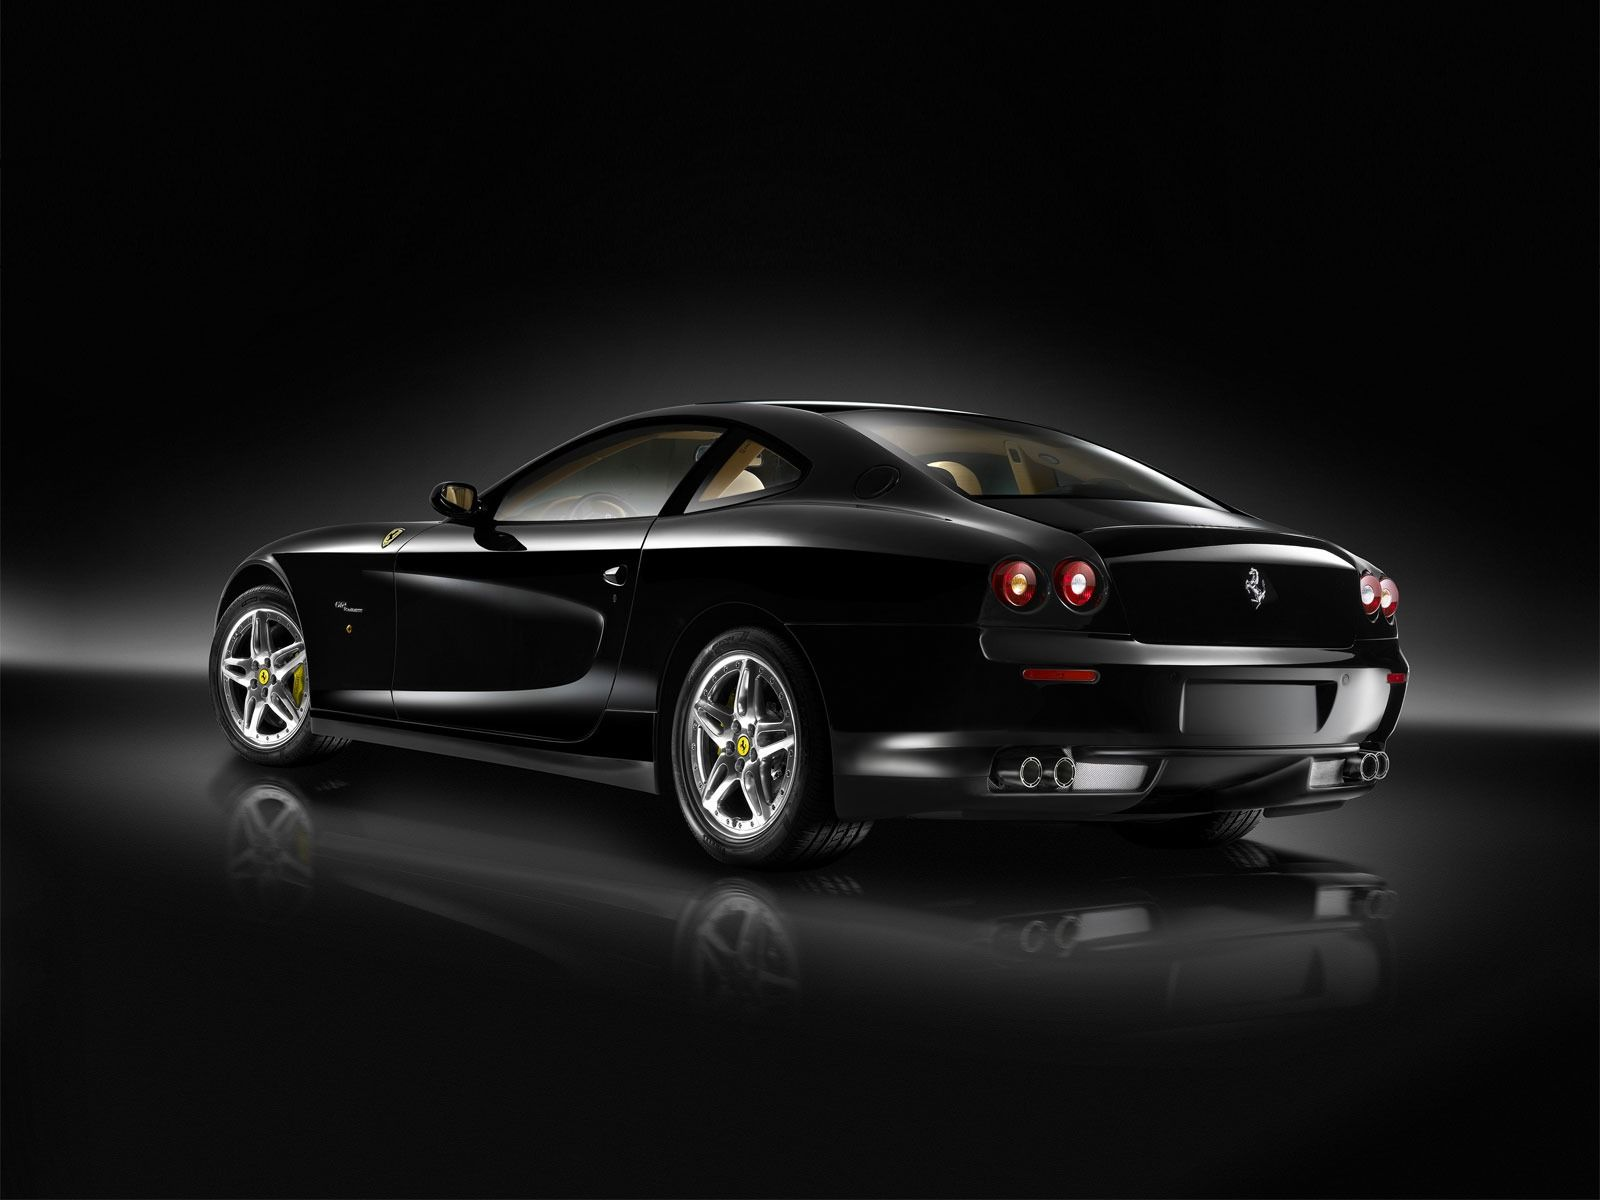 Attractive Ferrari Scaglietti Black Wallpaper Ferrari Cars Wallpapers In